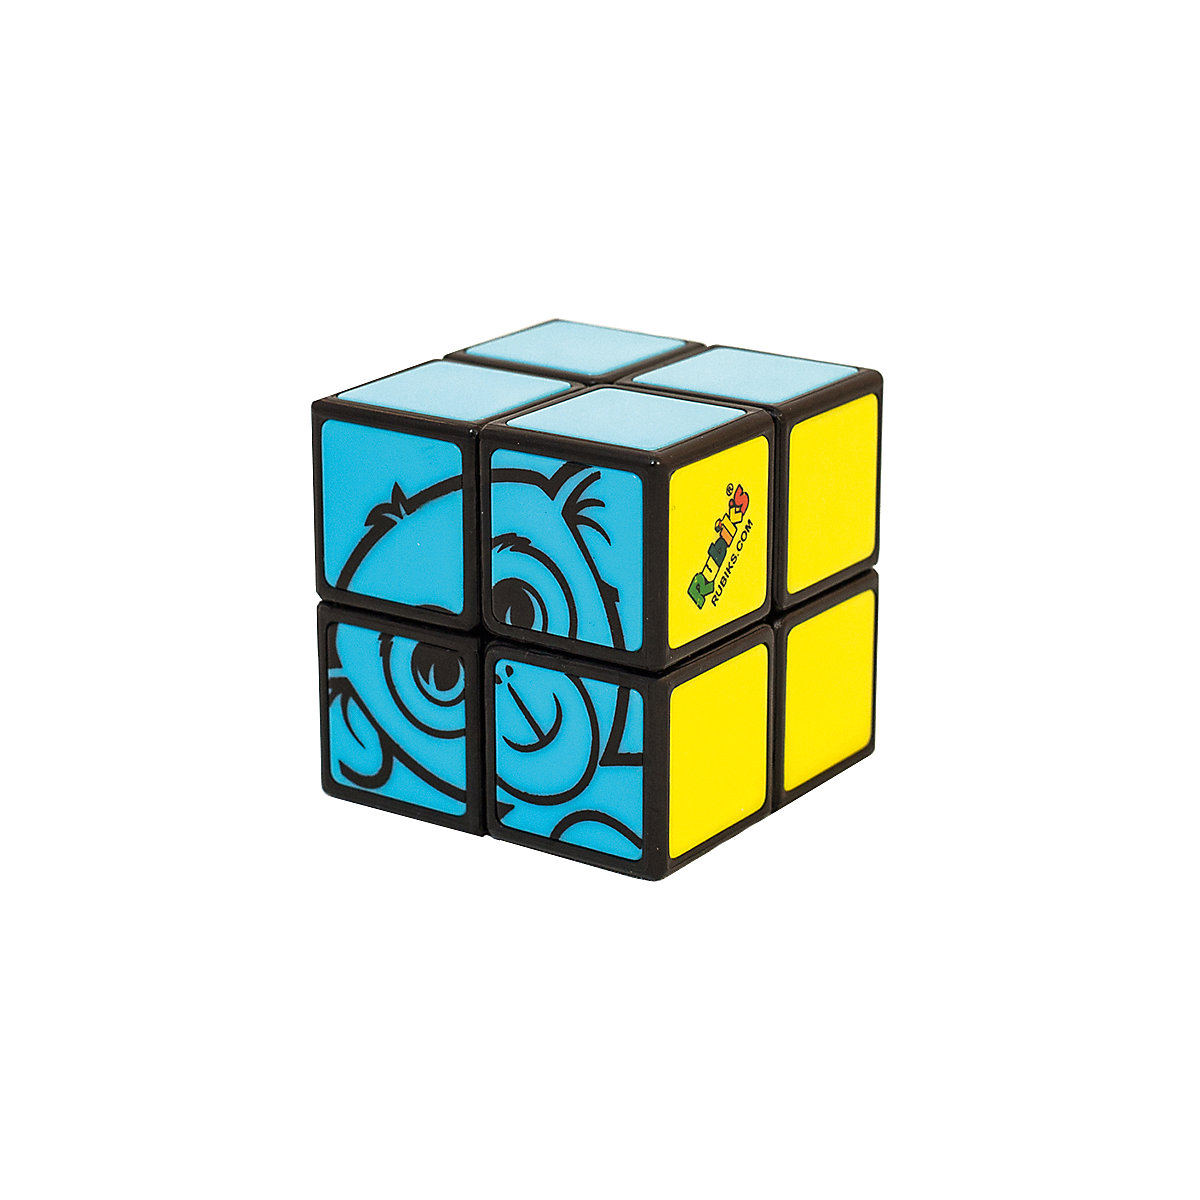 Rory's Story Cubes Magic 4166718 children educational game puzzles toy toys kids play activity funny rainbow wooden buliding blocks children early education toys brinquedos children kids educational play toy set